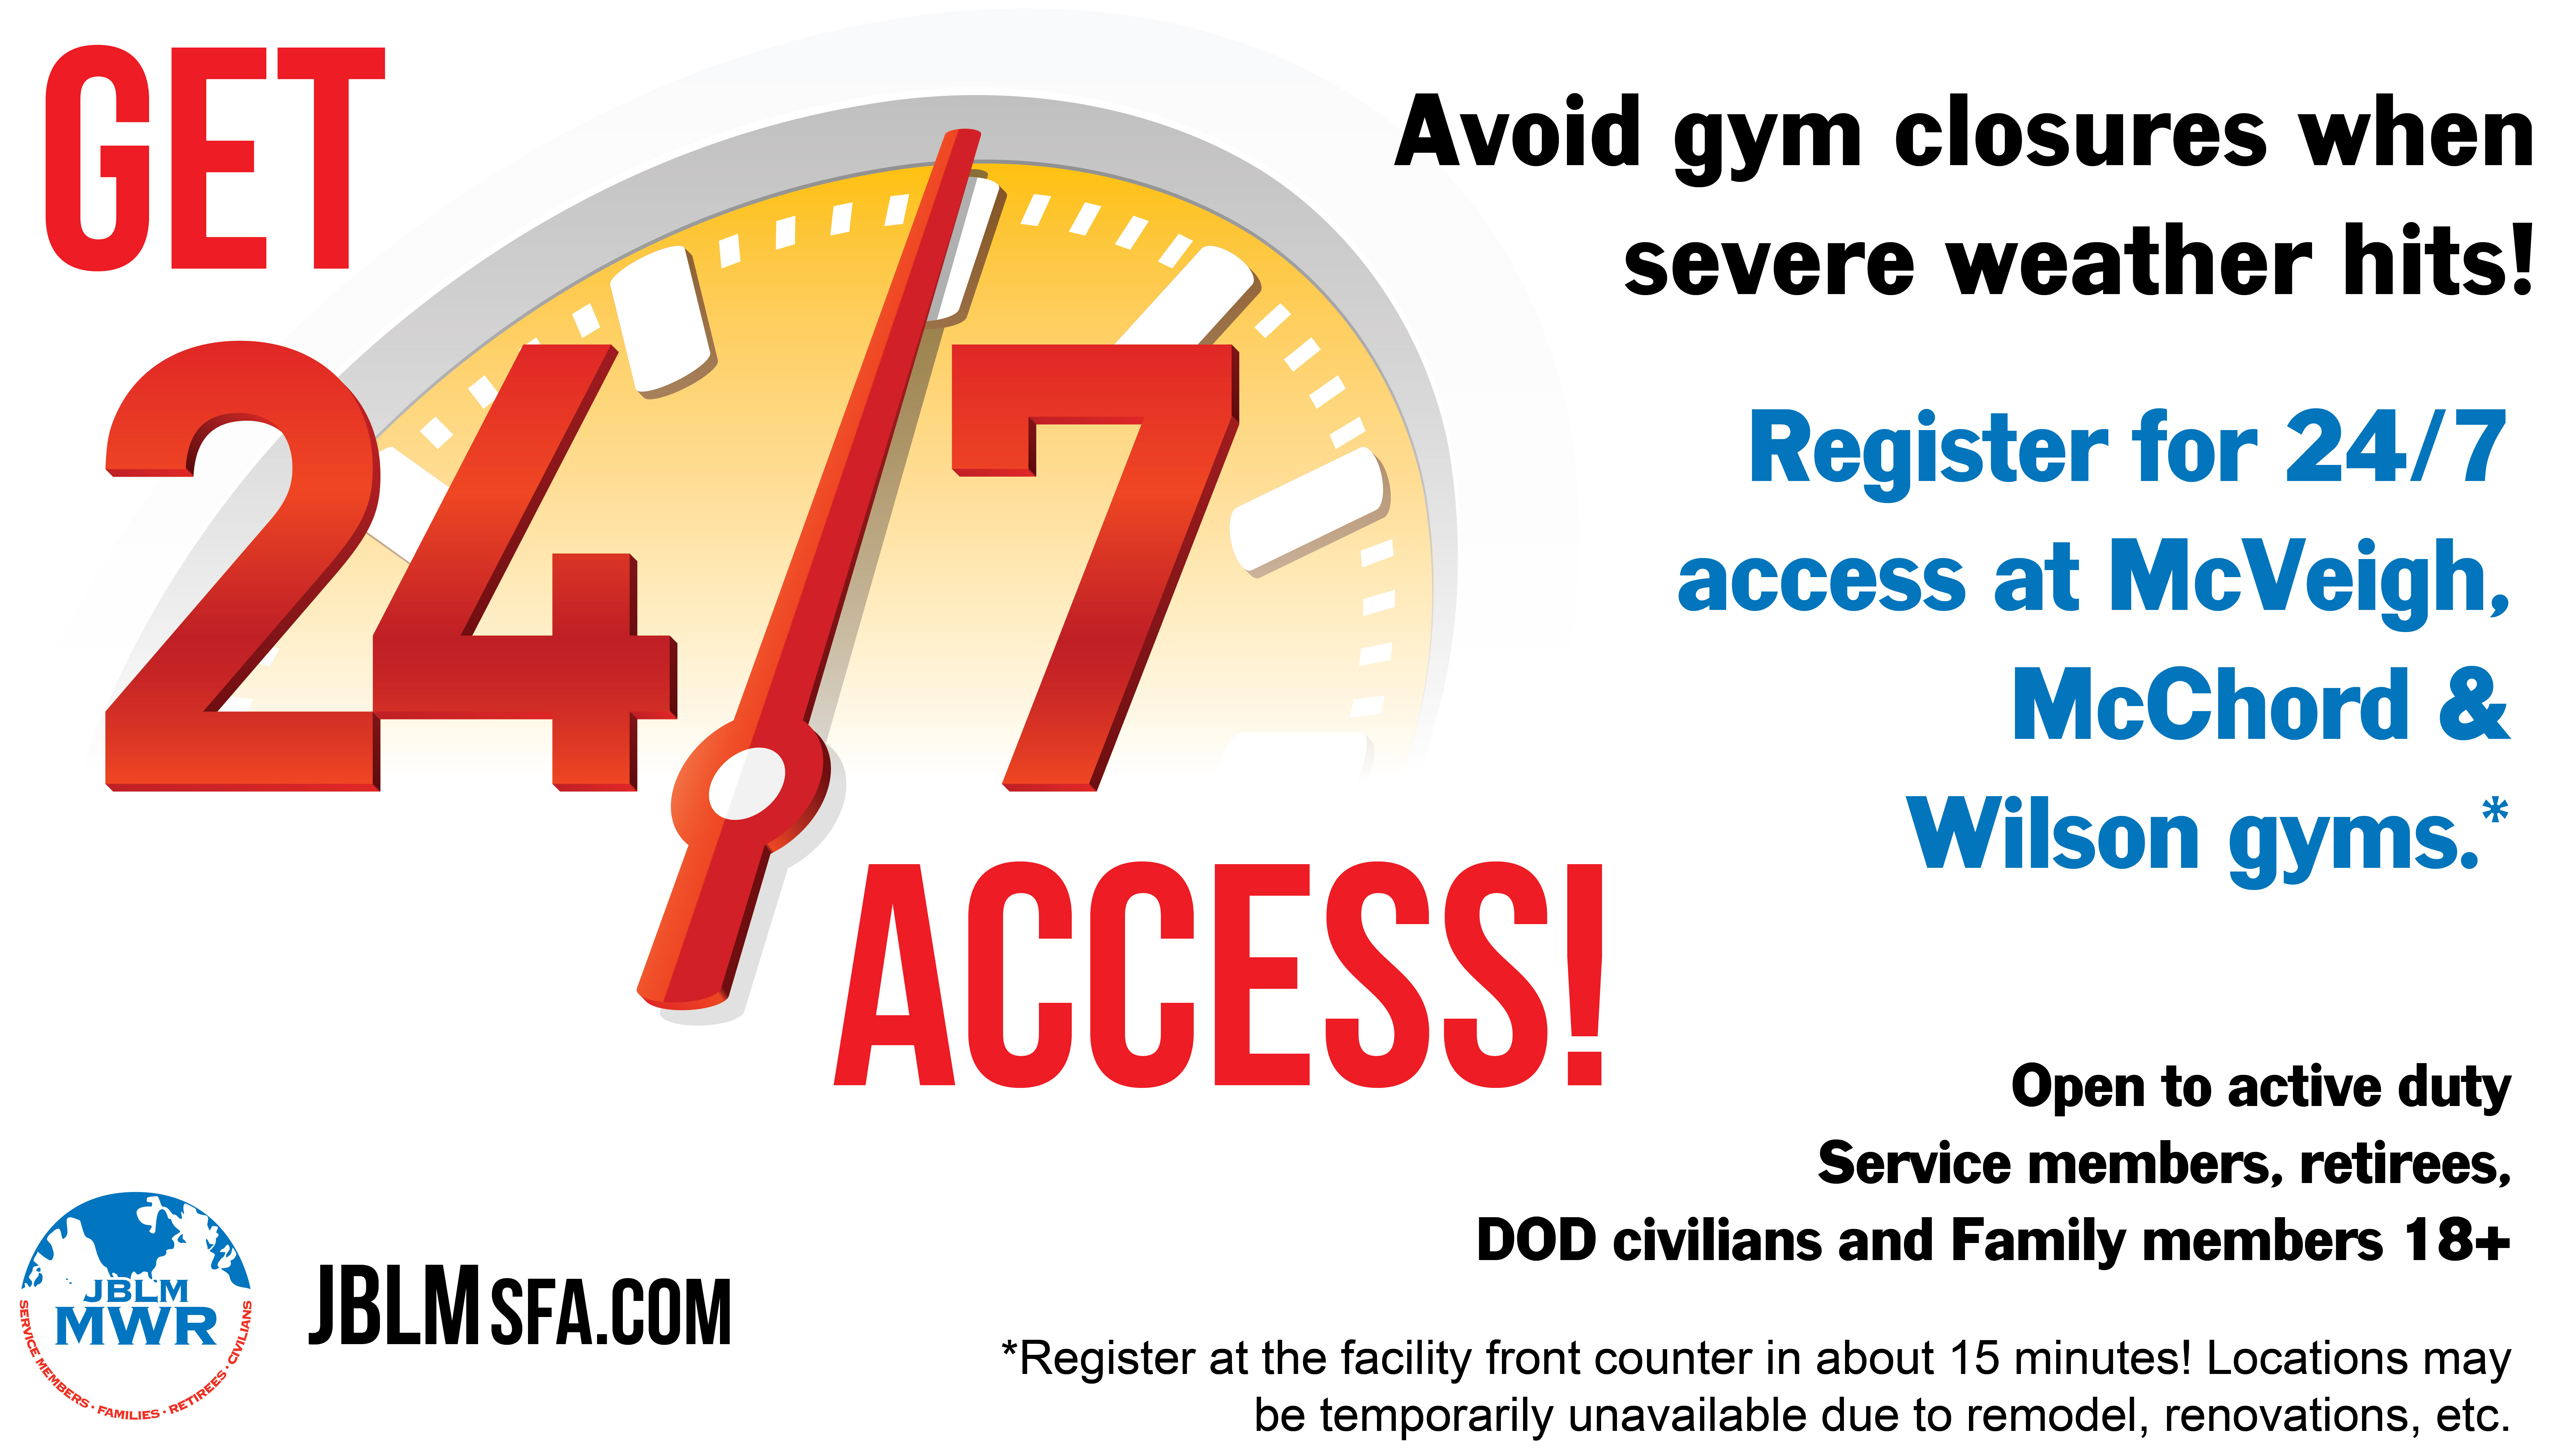 Register for access before severe weather hits